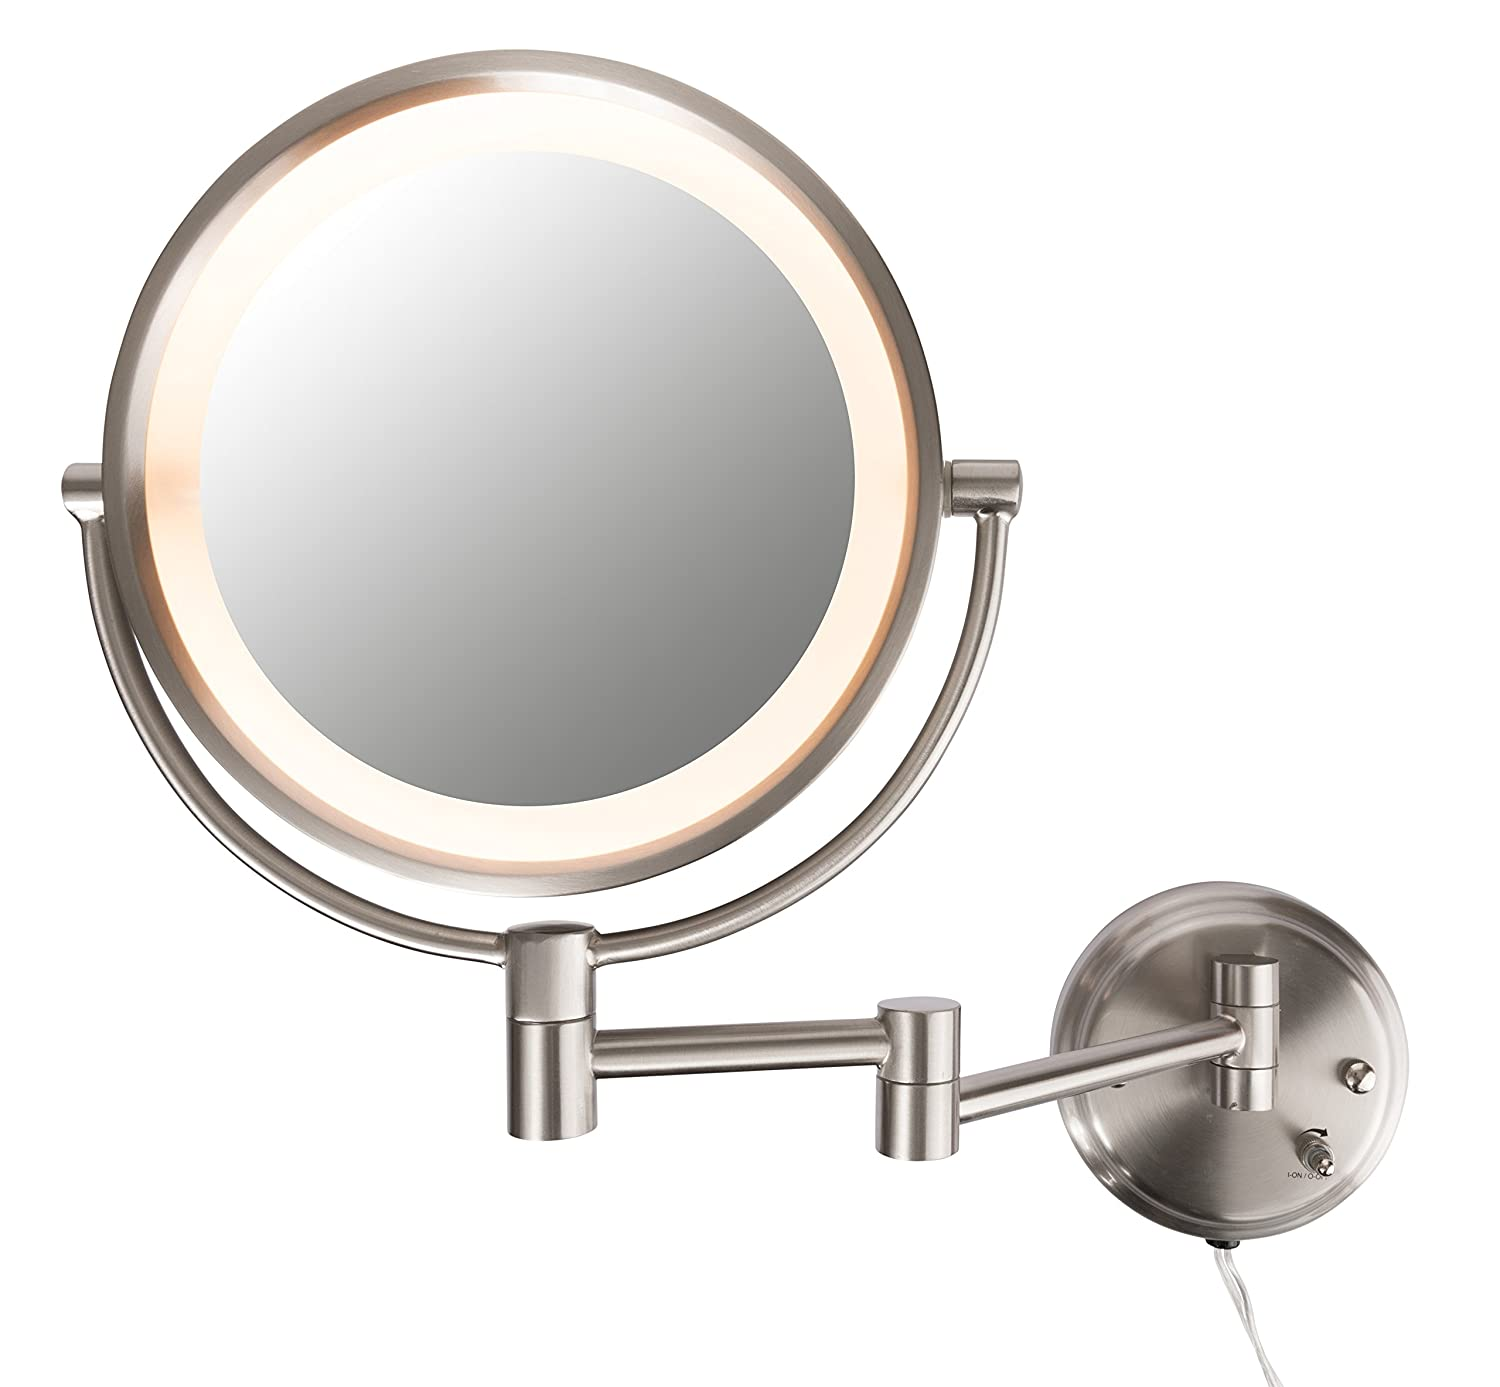 Conair 8X Lighted Wall Mounted Makeup Mirror Reviews